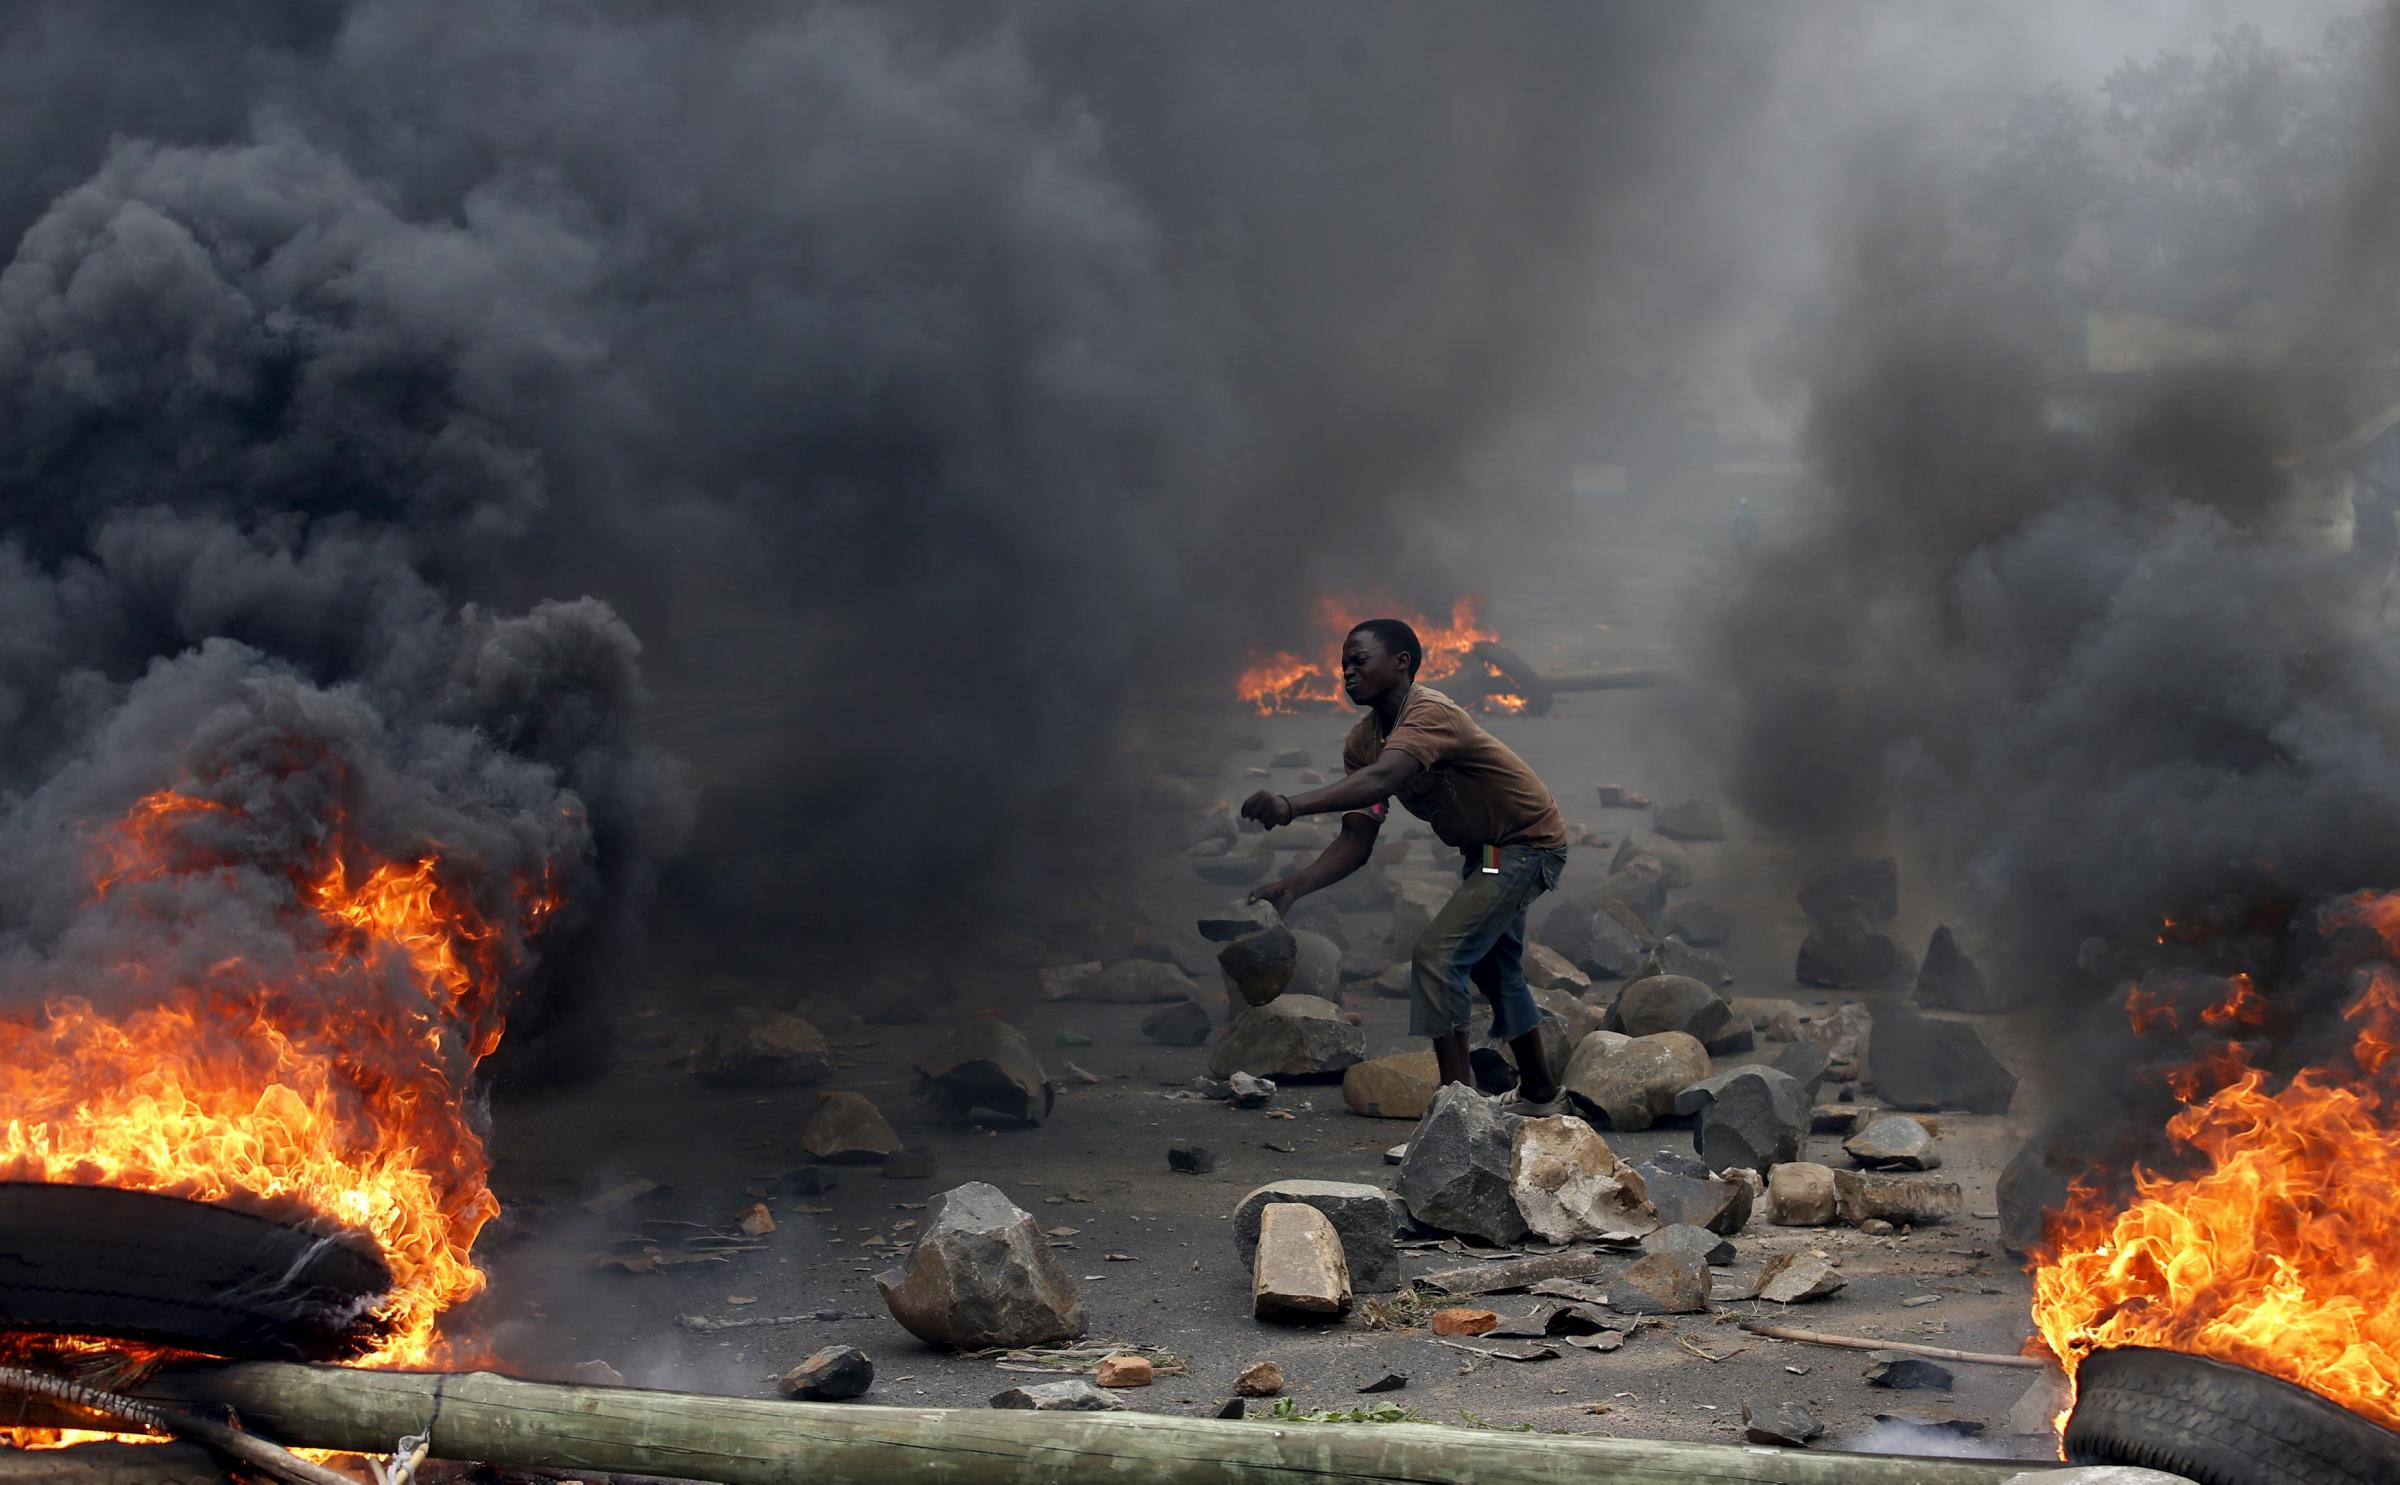 A protester sets up a  barricade during a protest against Burundi President Pierre Nkurunziza and his bid for a third term in Bujumbura, Burundi, in this May 22, 2015 file photo. The European Union mission in Burundi is temporarily making a small reductio